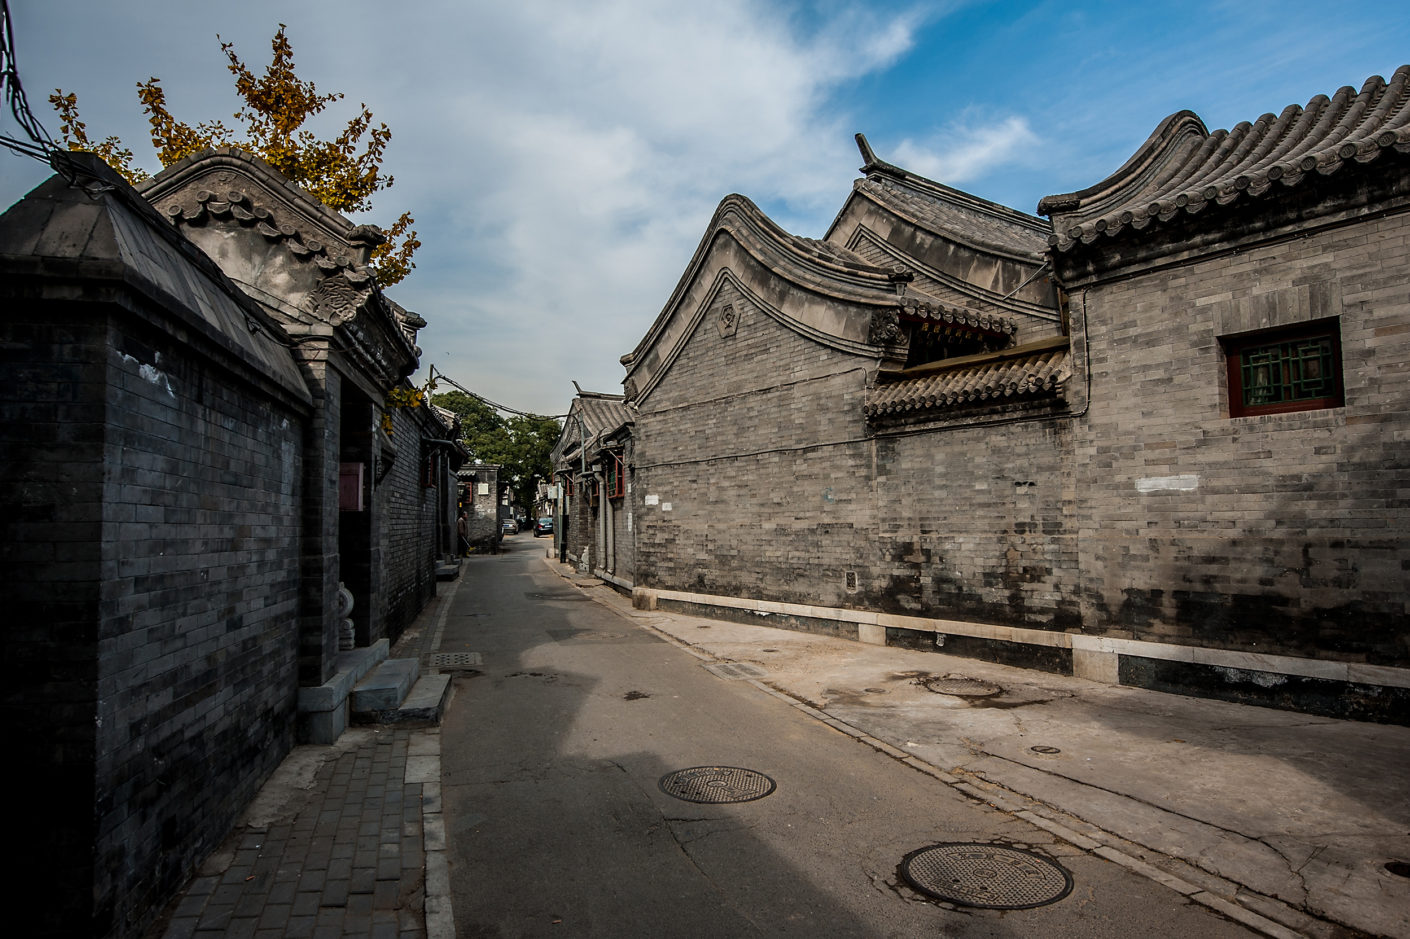 Hutong street view in Baitasi, Beijing, Beijing Design Week 2016